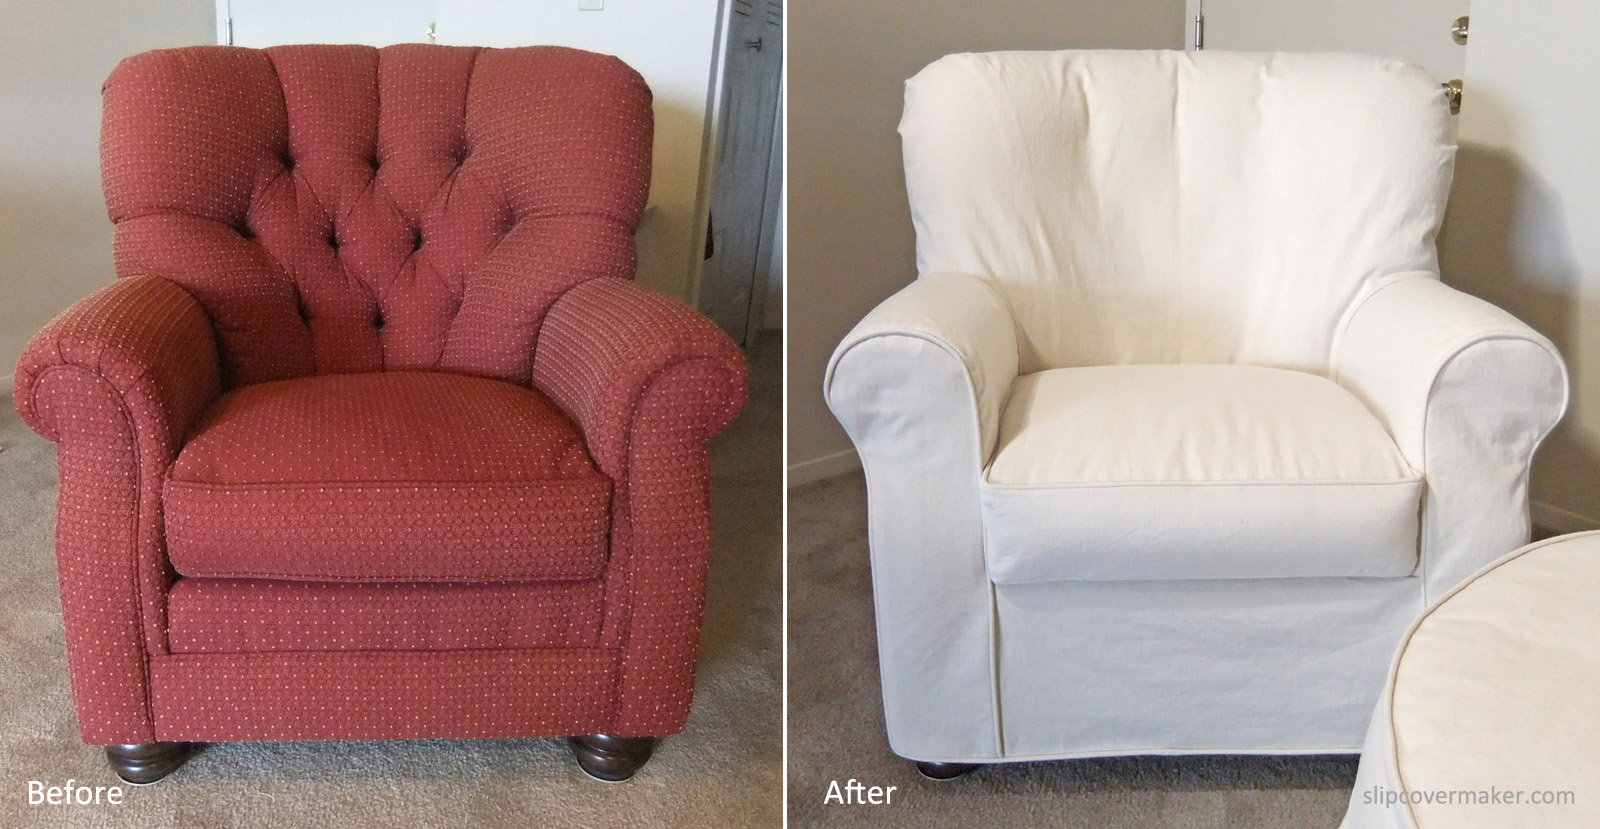 Superieur Natural Denim Slipcover For Curvy Armchair. Natural Denim Slipcover By  Karen Powell